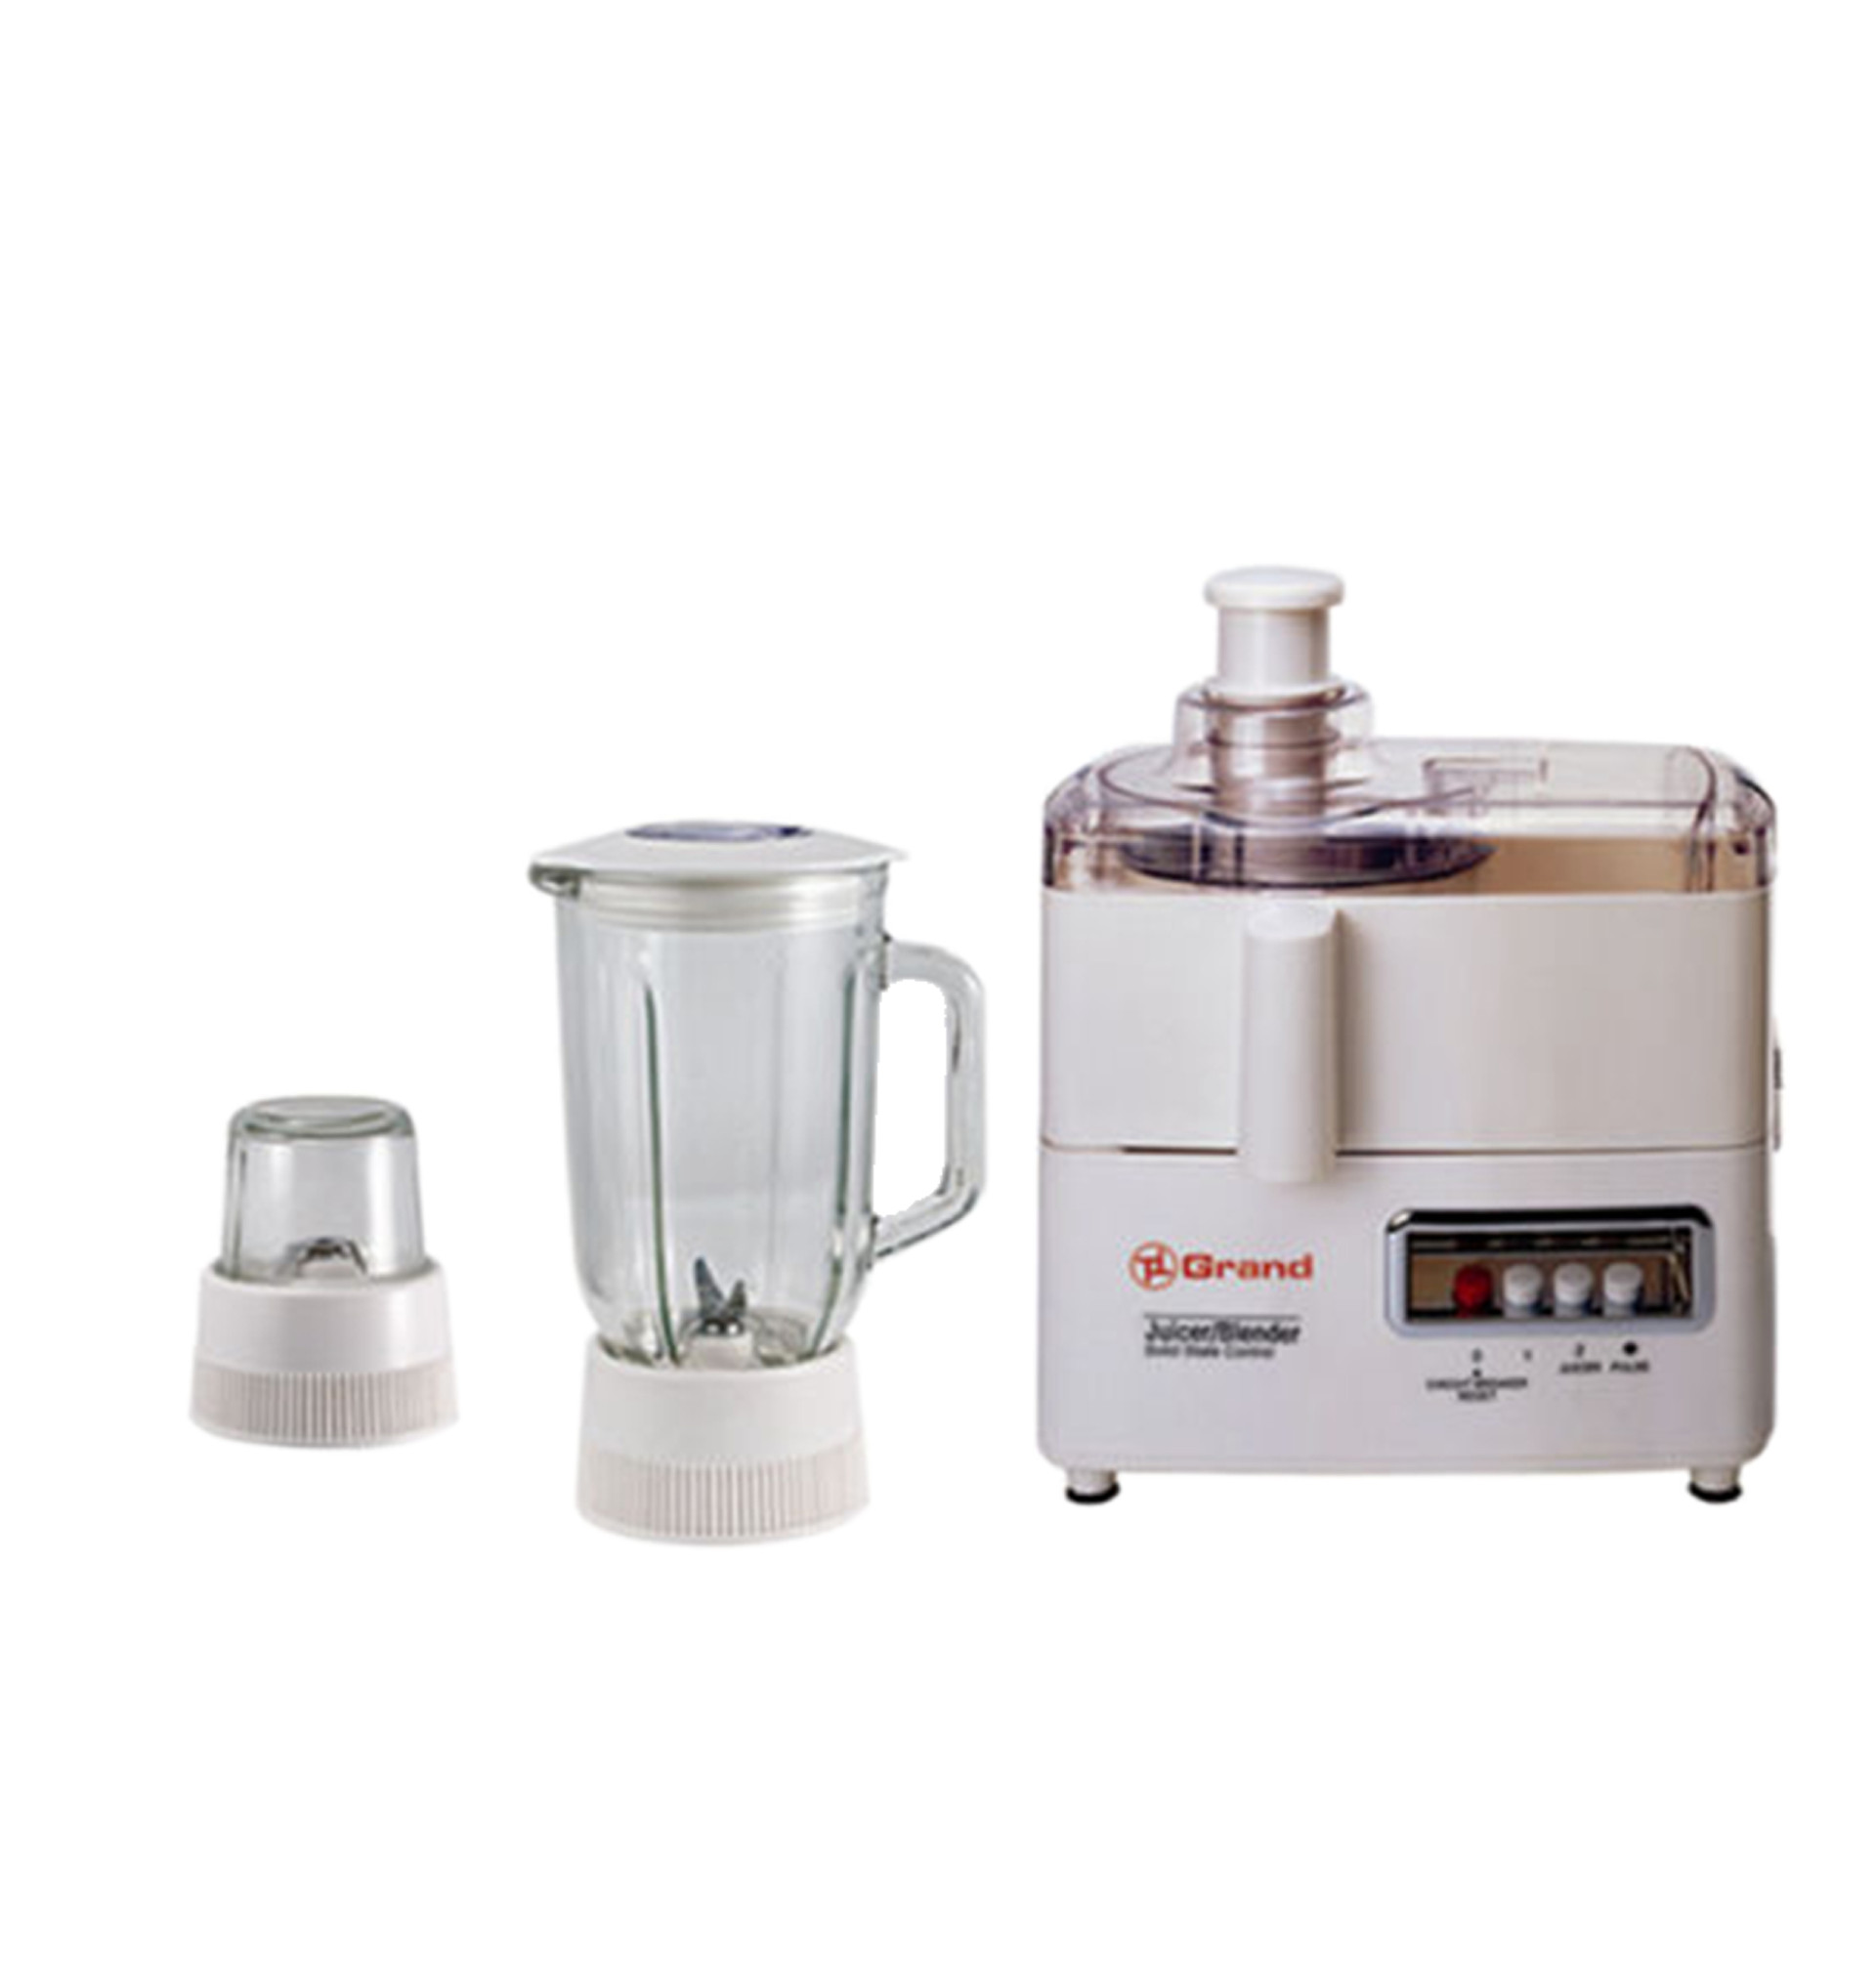 Home Appliance Juice Extractor Blender Mill Mixer 3 in 1 Kd-